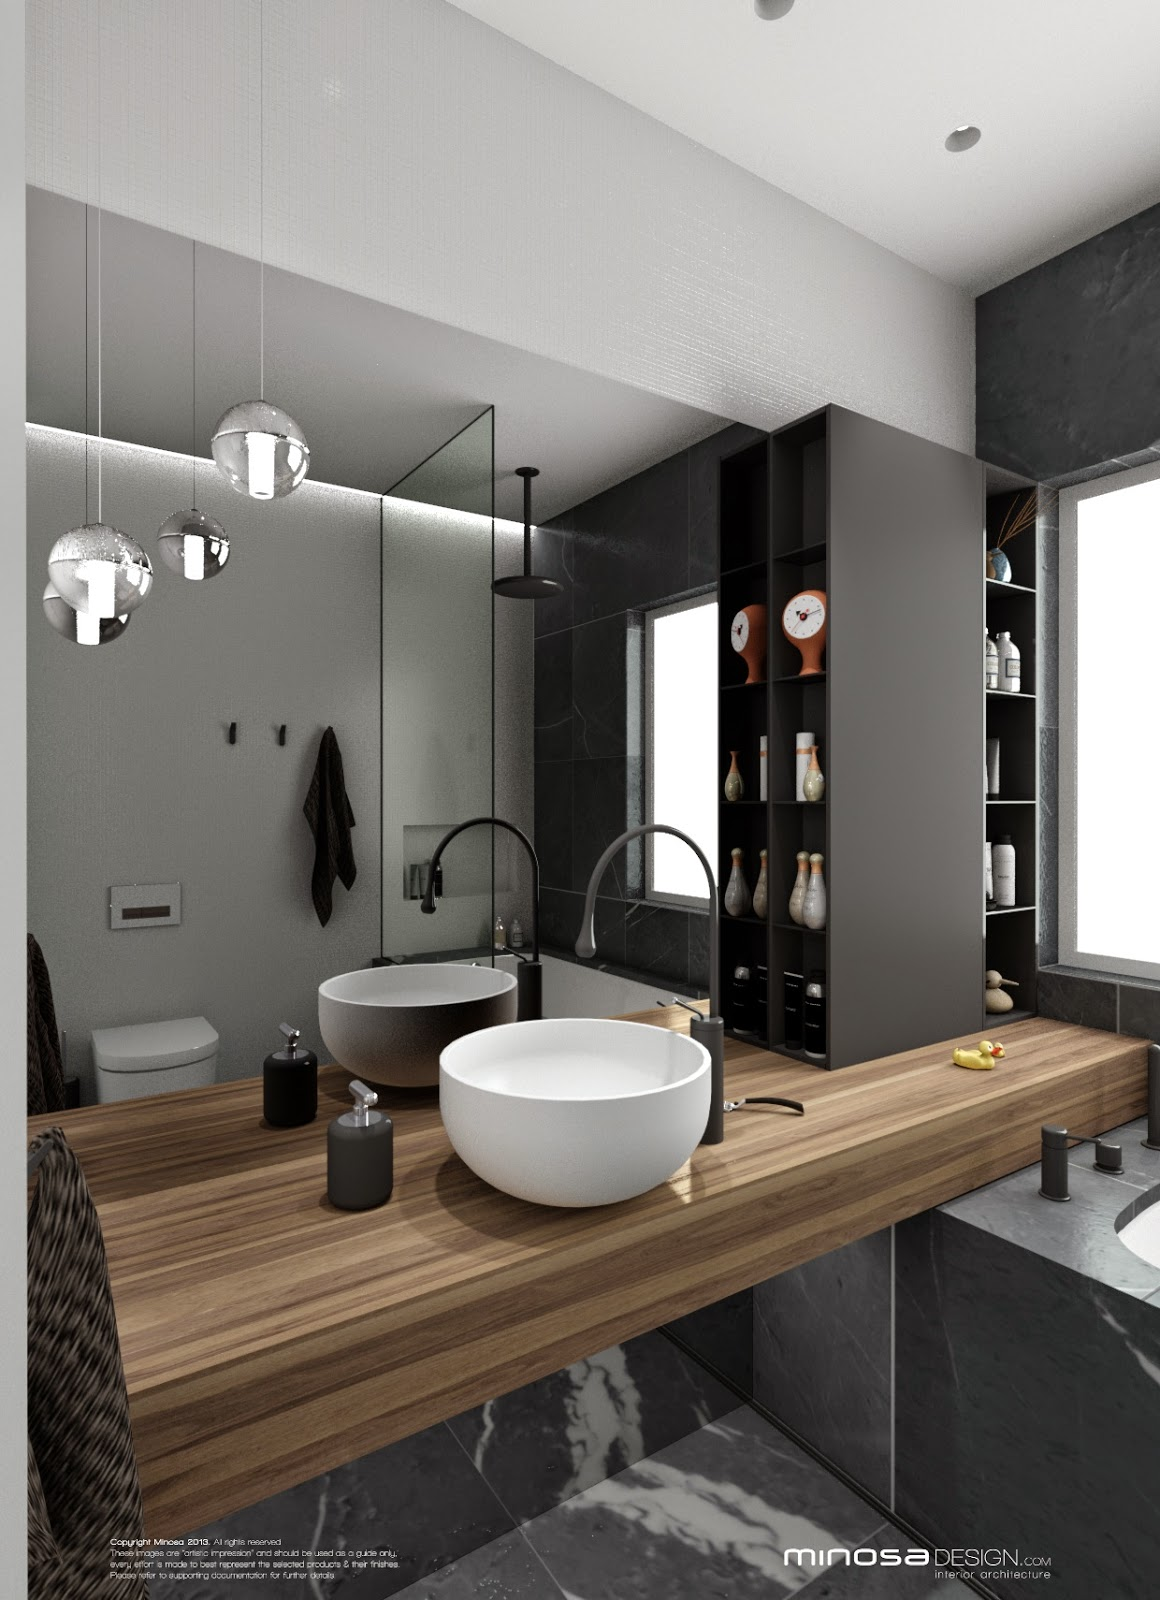 Minosa bathroom design small space feels large for Room design with bathroom